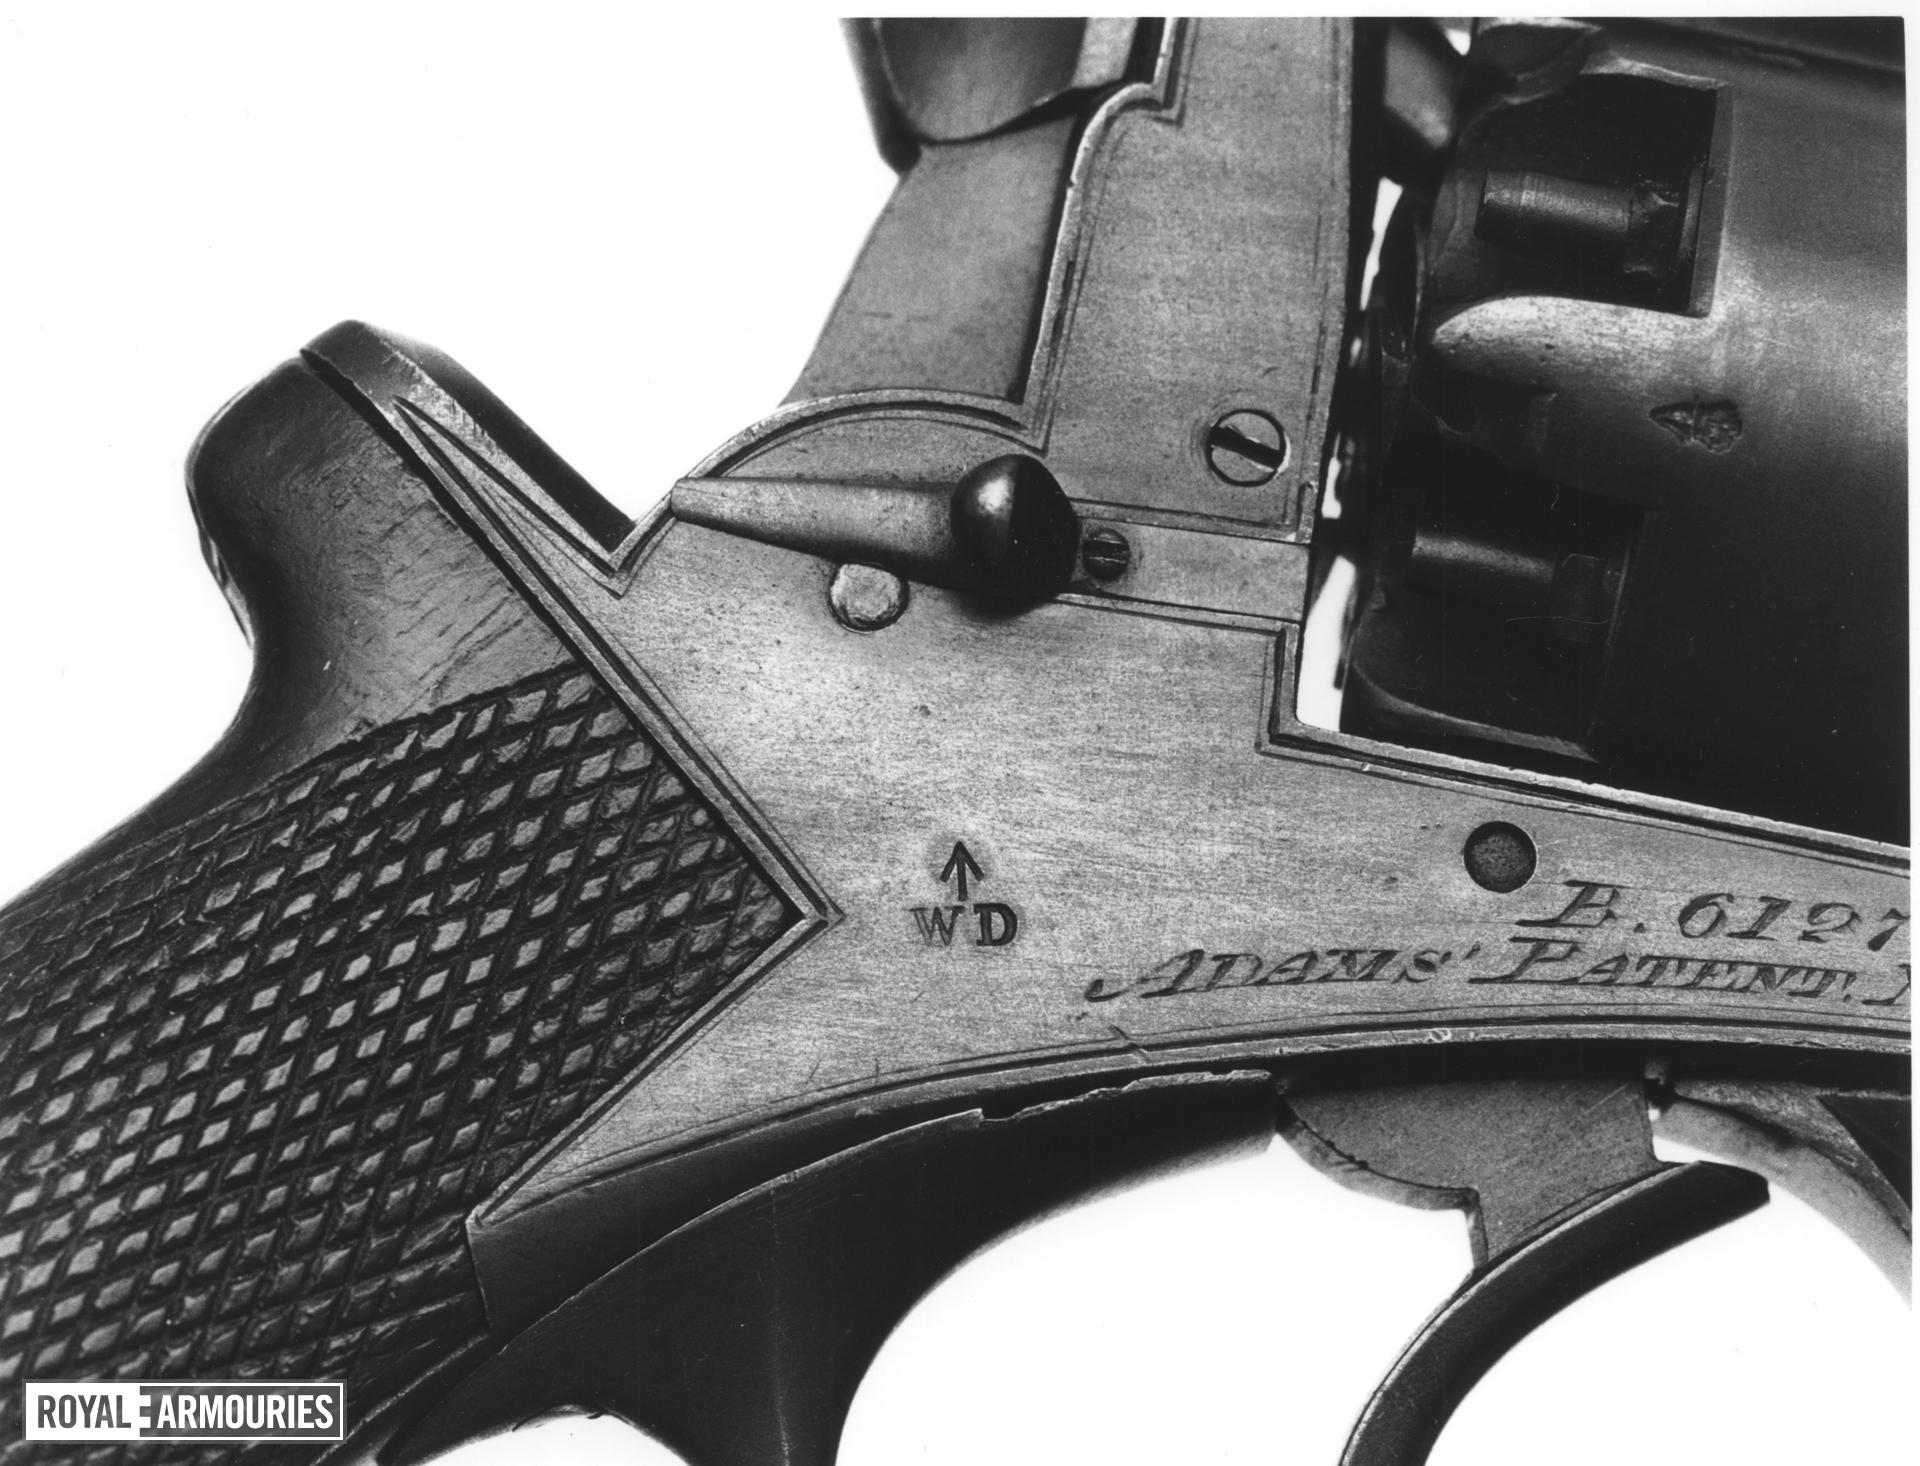 Percussion five-shot military revolver - Beaumont Adams With military acceptance marks on the frame